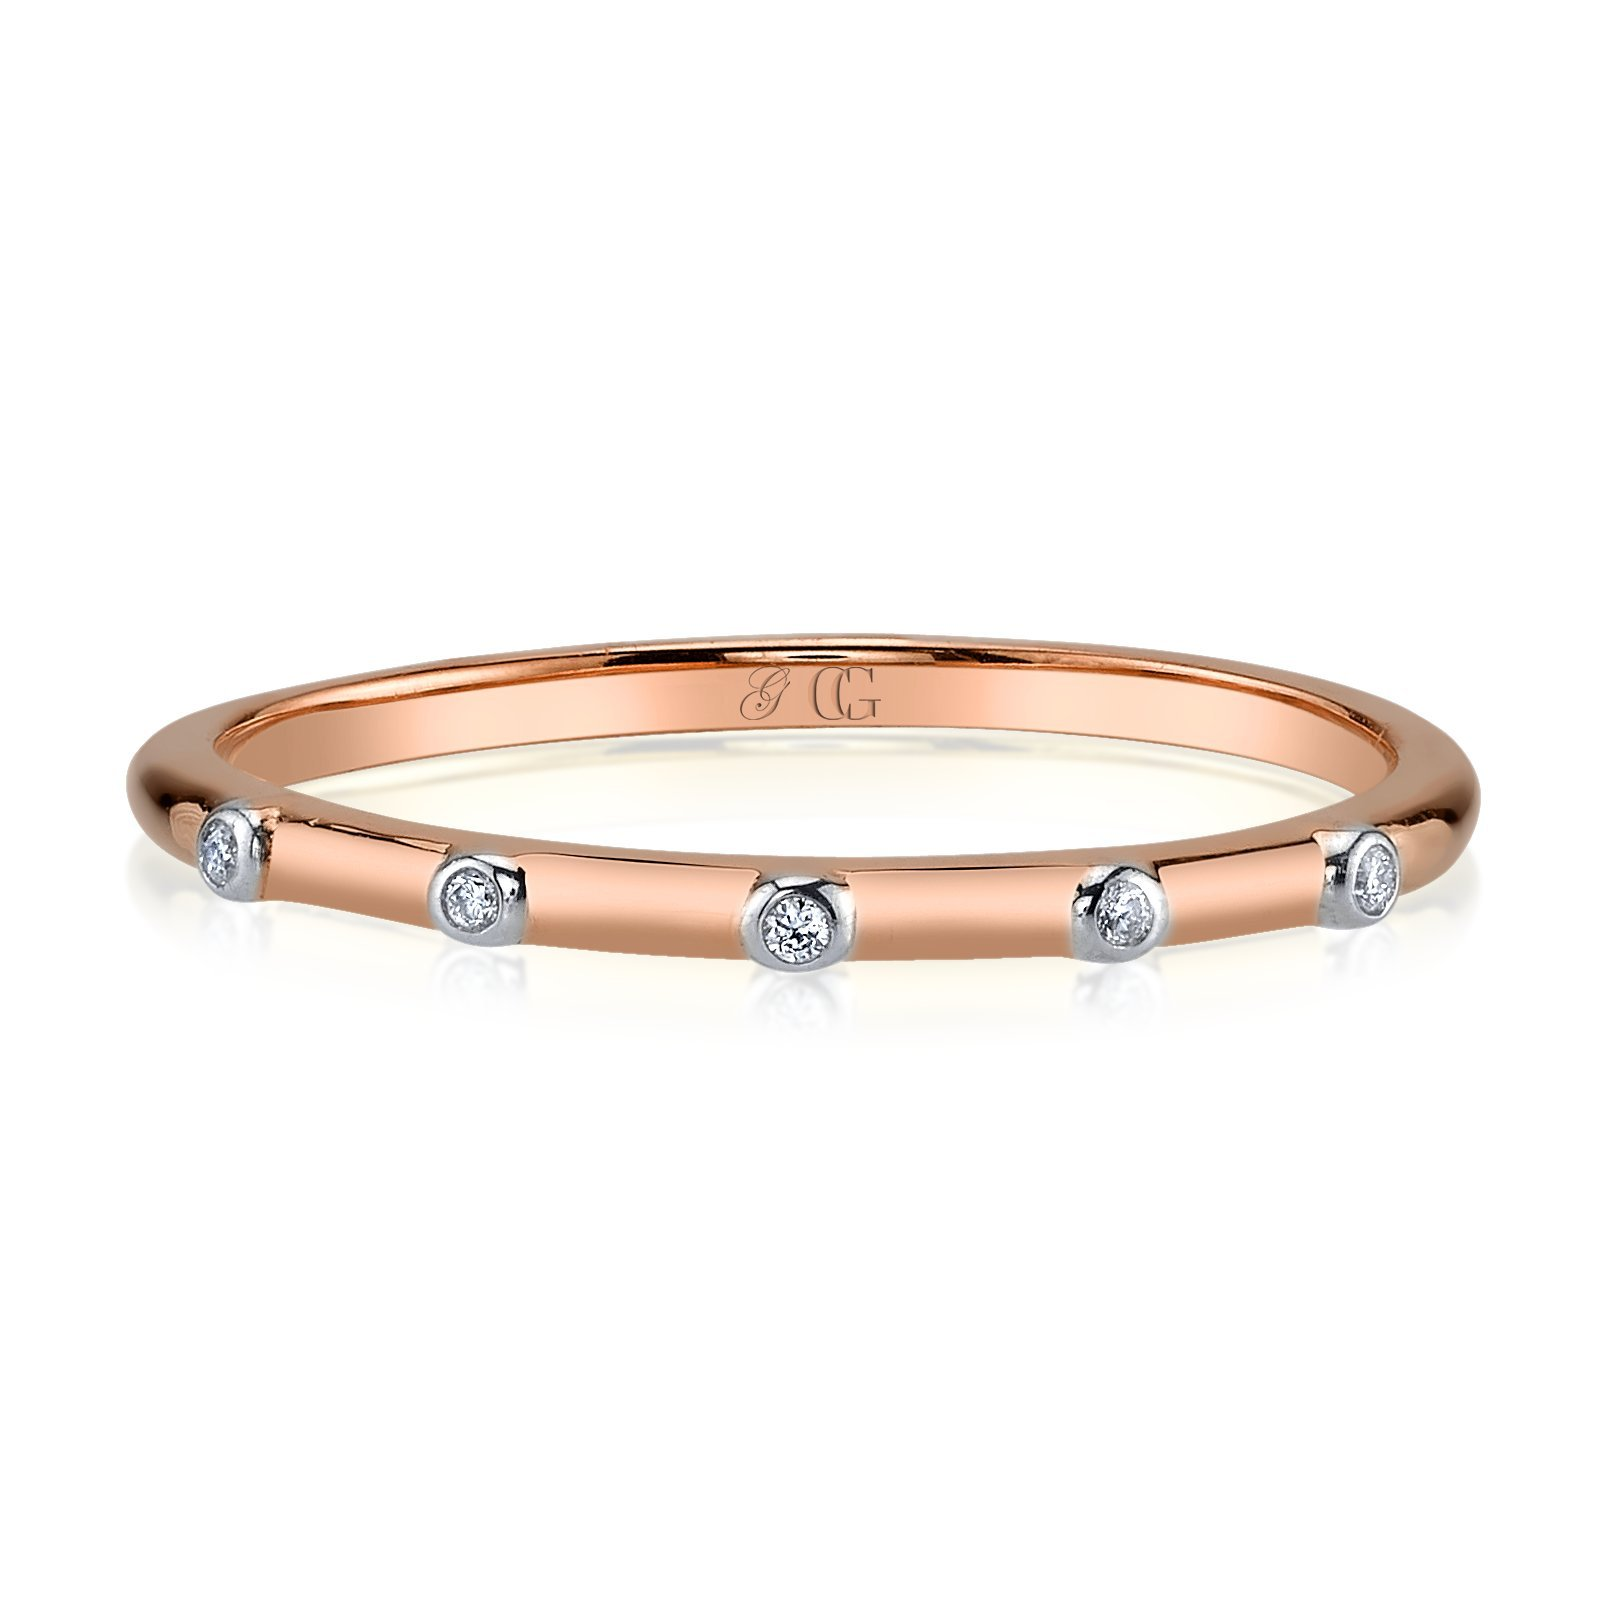 CHARLIZE GADBOIS Sterling Silver Diamond Ring, Rose Gold Plated (0.025 cttw, I1-I2 Clarity), Size 8 by Gadbois Jewelry (Image #2)